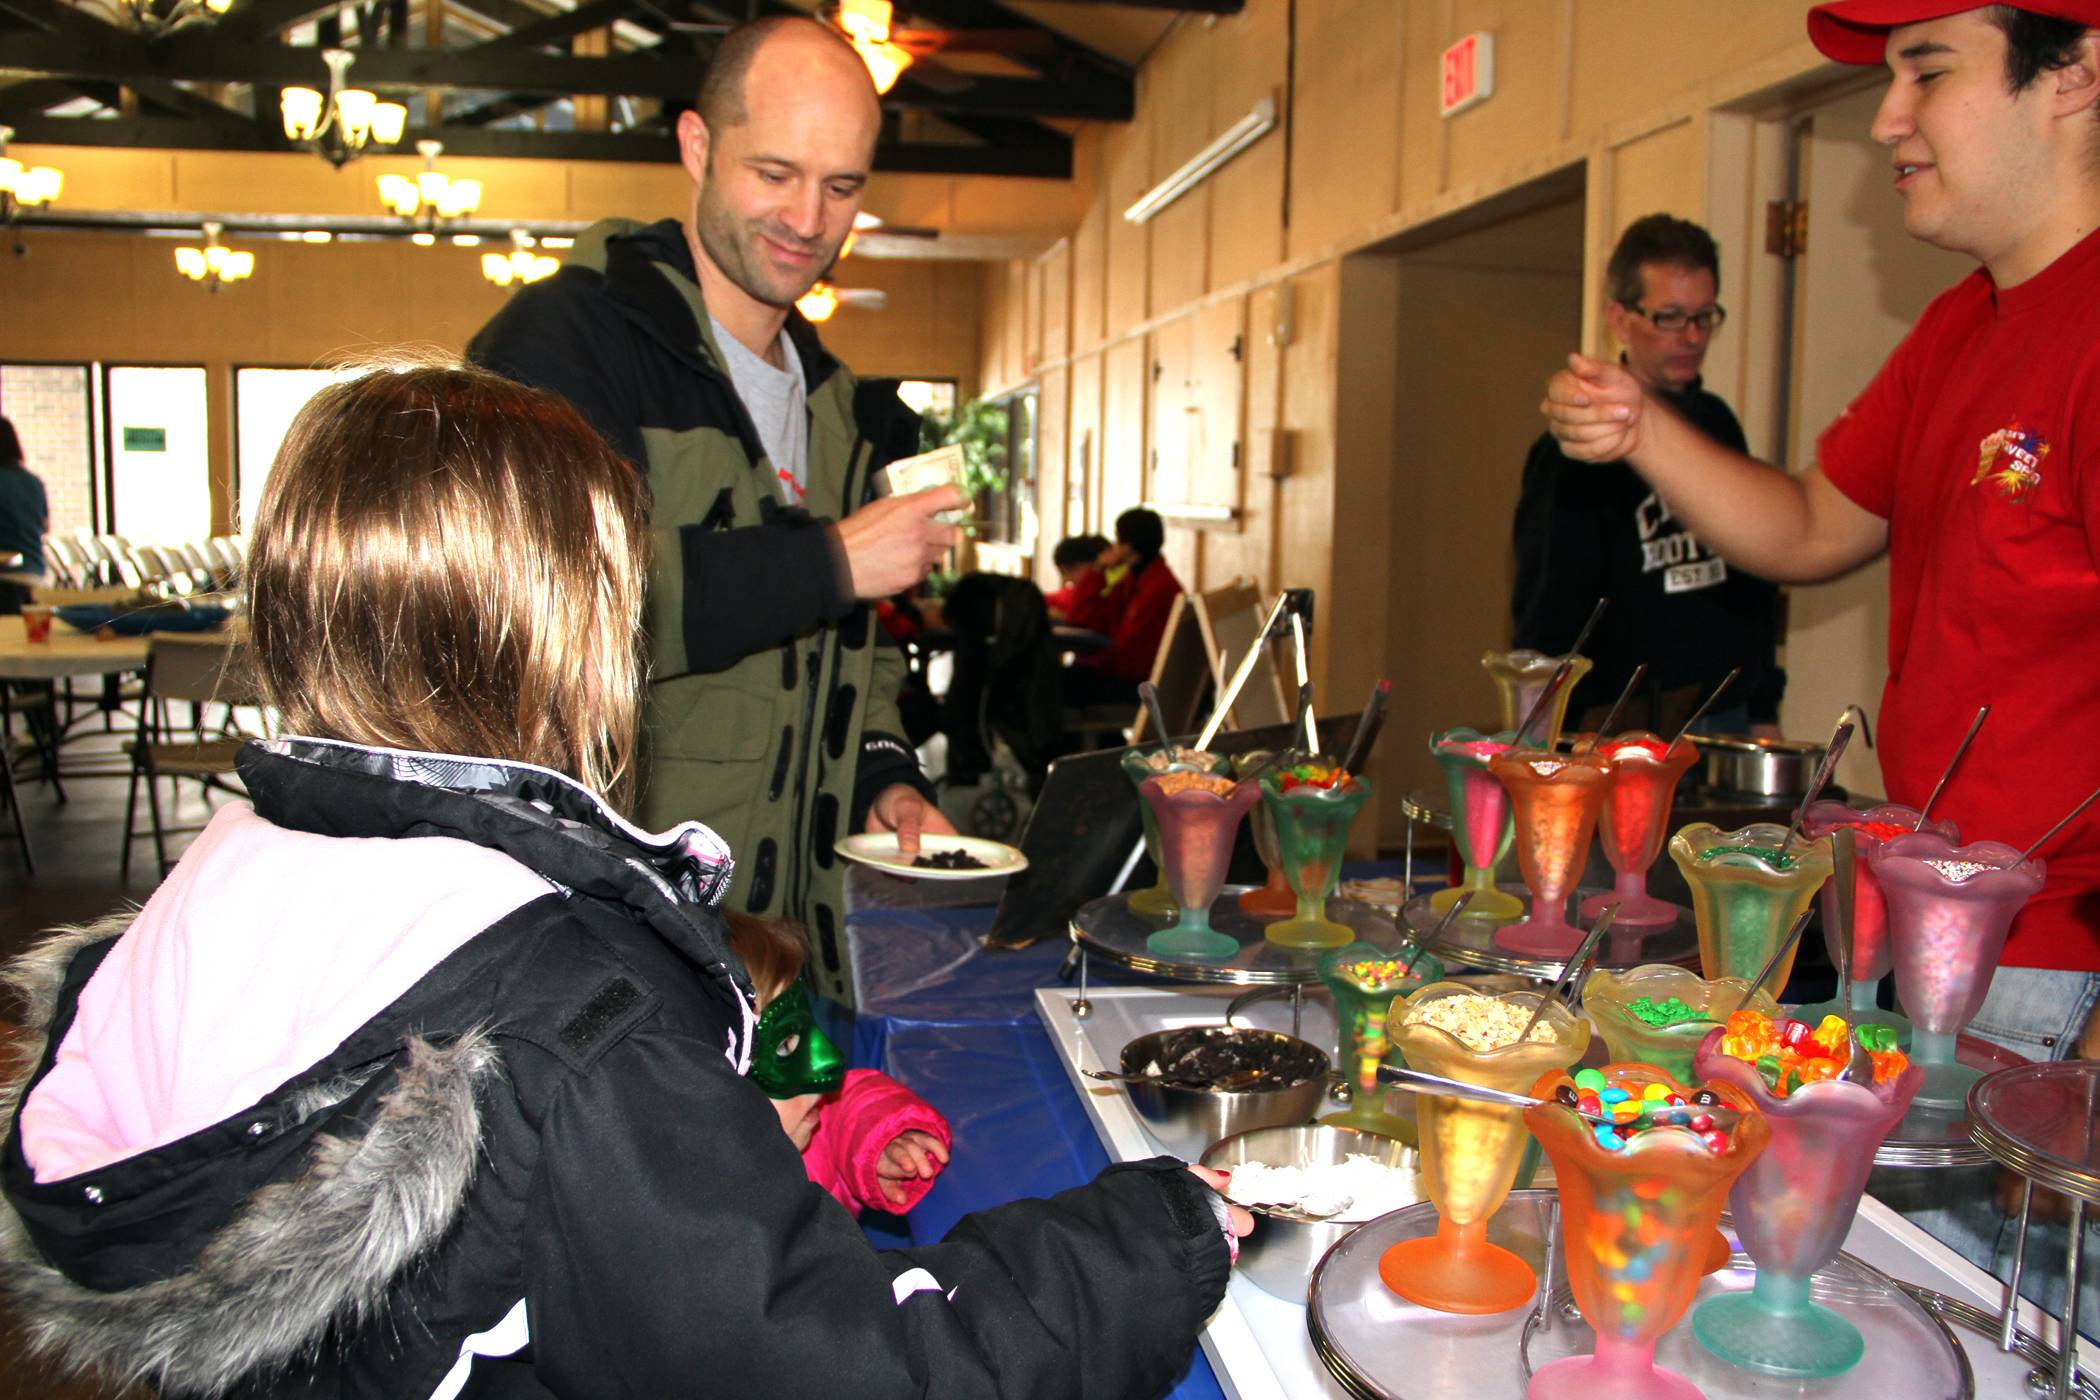 Sean Hayden, of Hinsdale, indulges his daughters at the Winterfest Sweets table during last year's celebration. Concessions, hot chocolate and hot wine will be available for purchase during Oak Brook Park District's Winterfest.